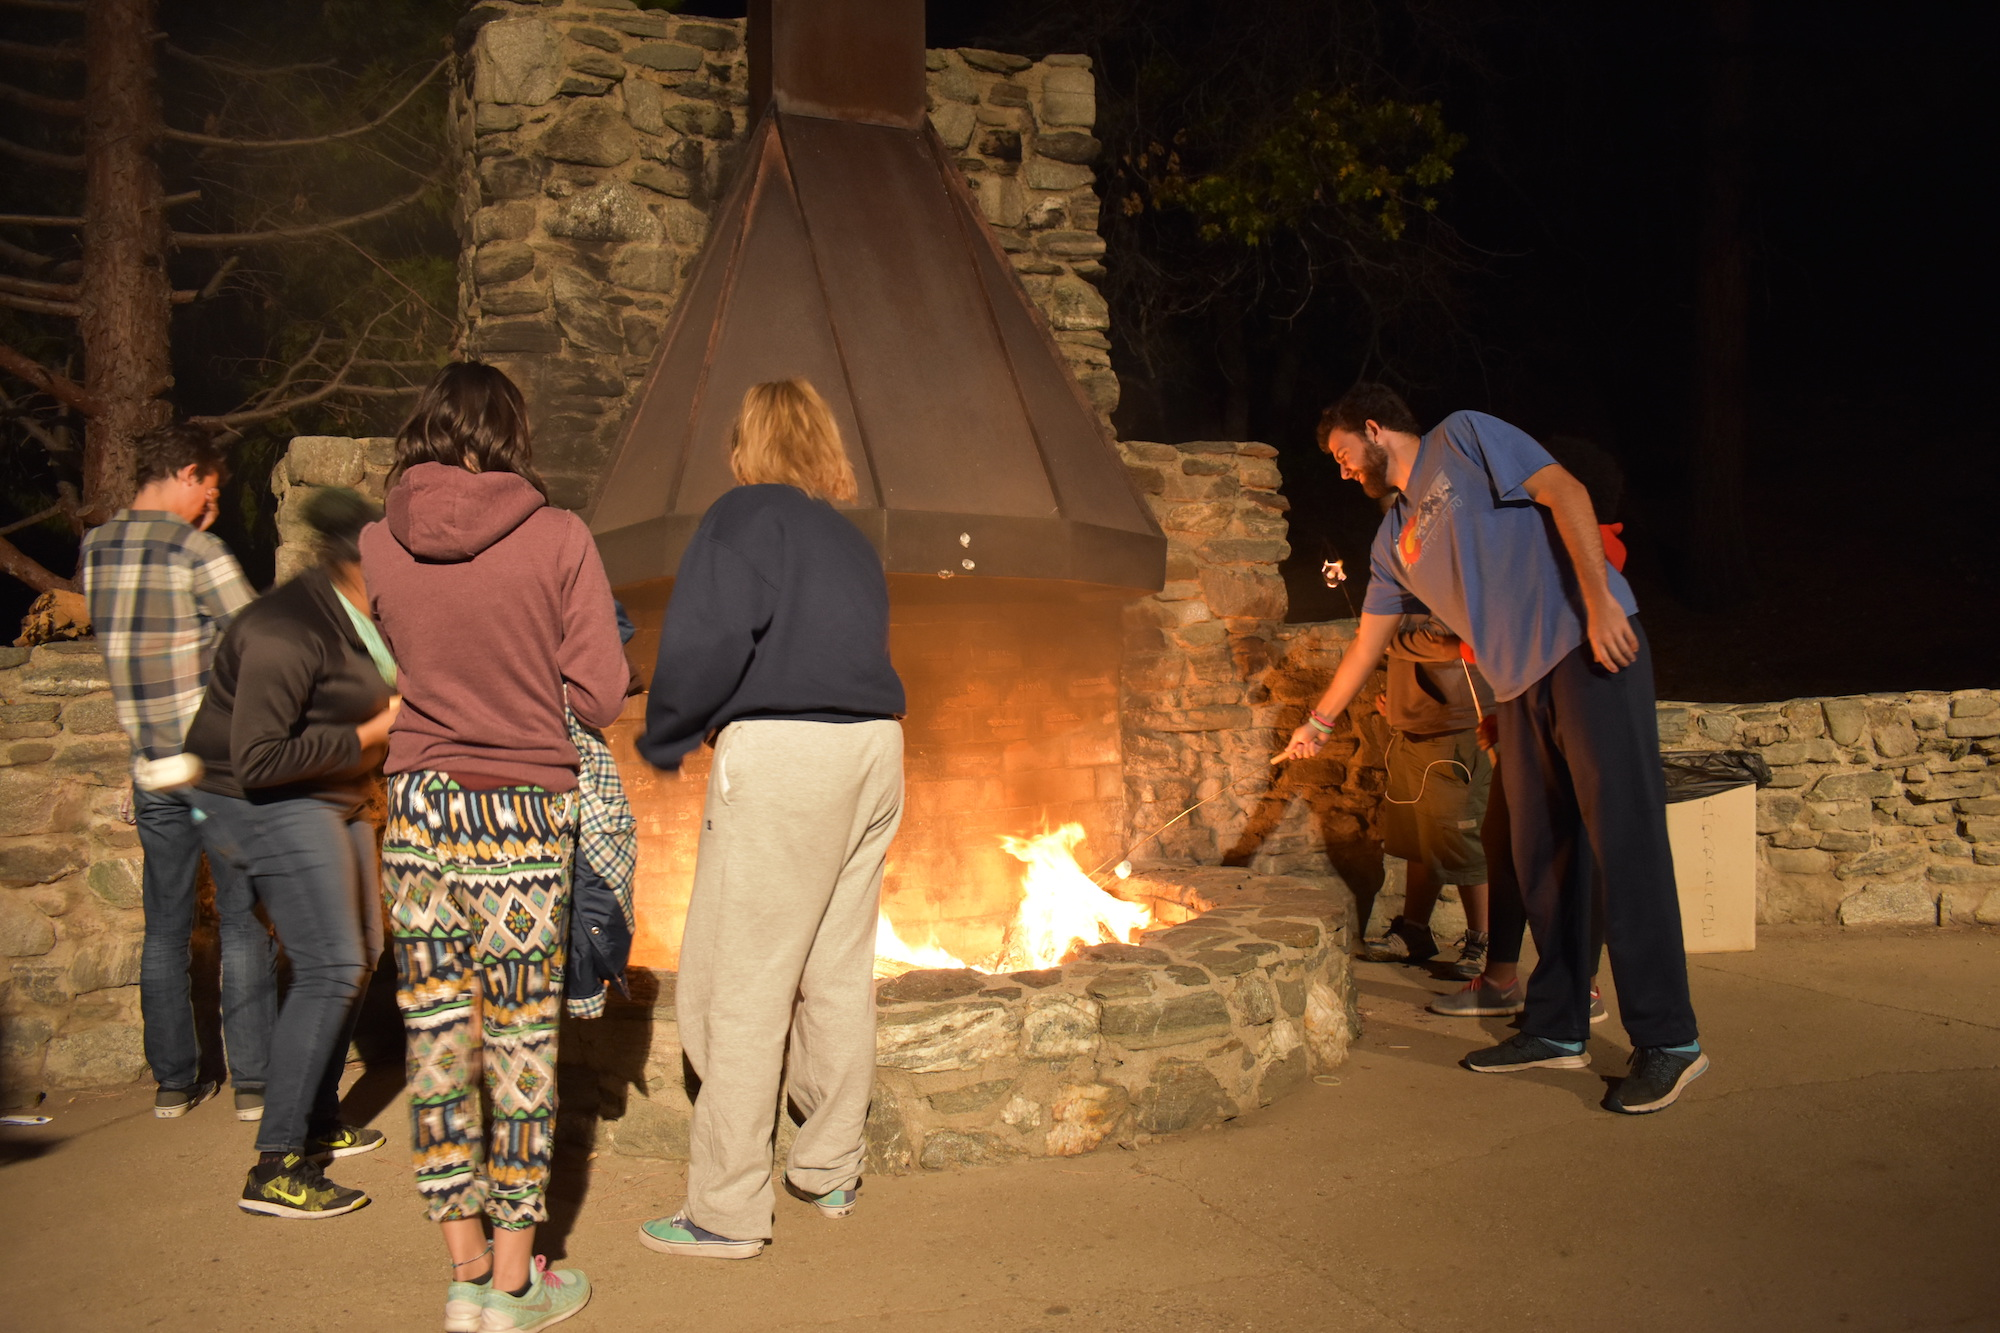 SPARC Retreat by a Campfire's Glow: An Effort for Revolutionary Change